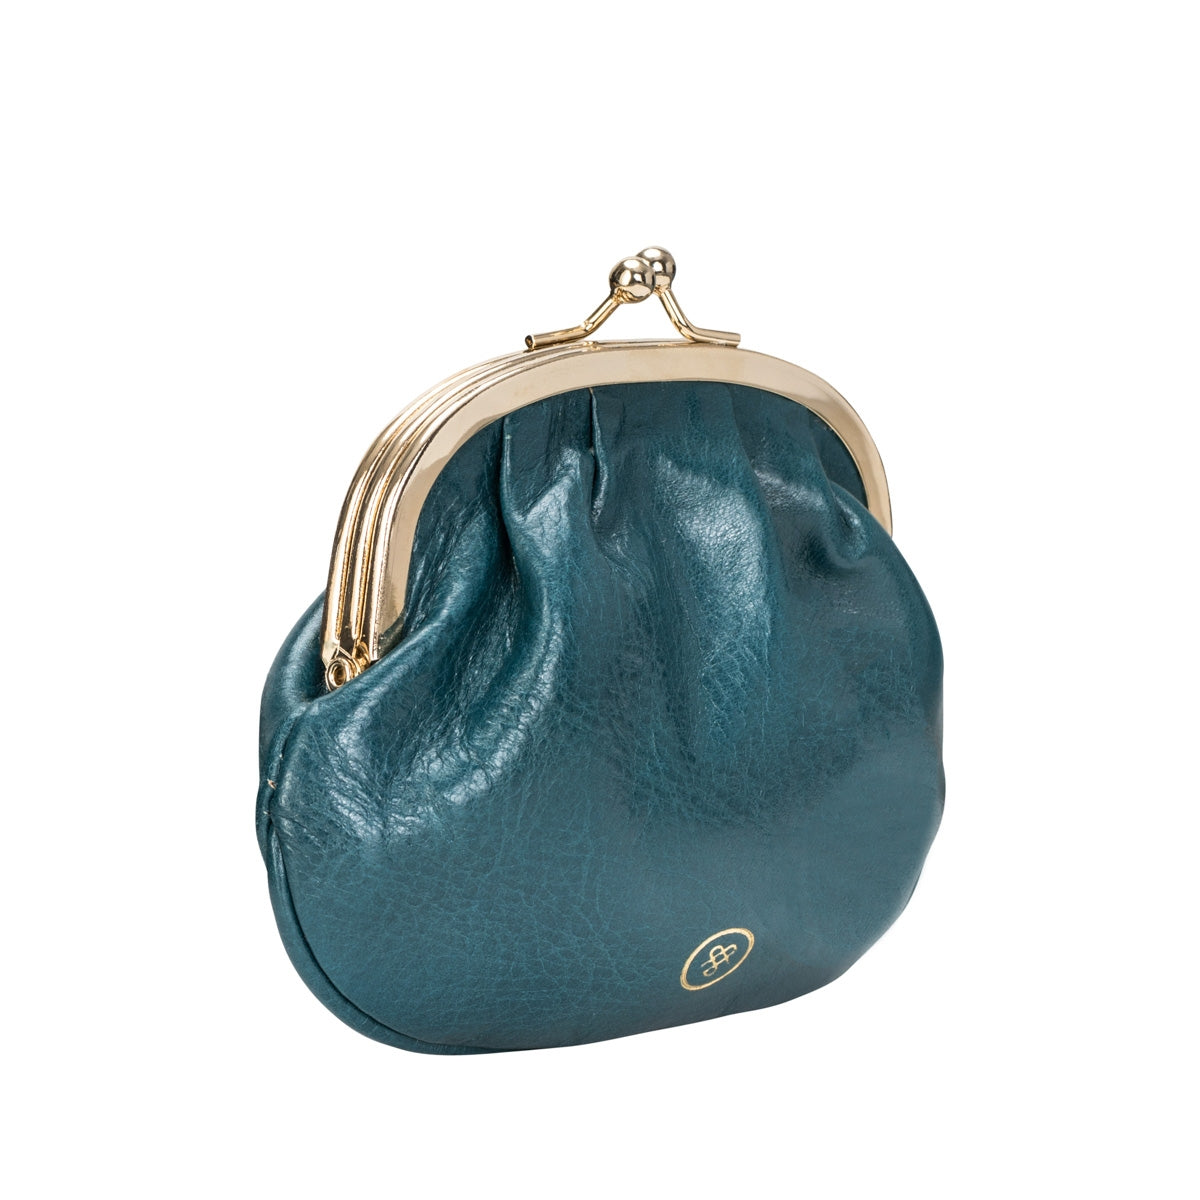 Image 2 of the Petrol Leather Ball Clasp Coin Purse for Ladies